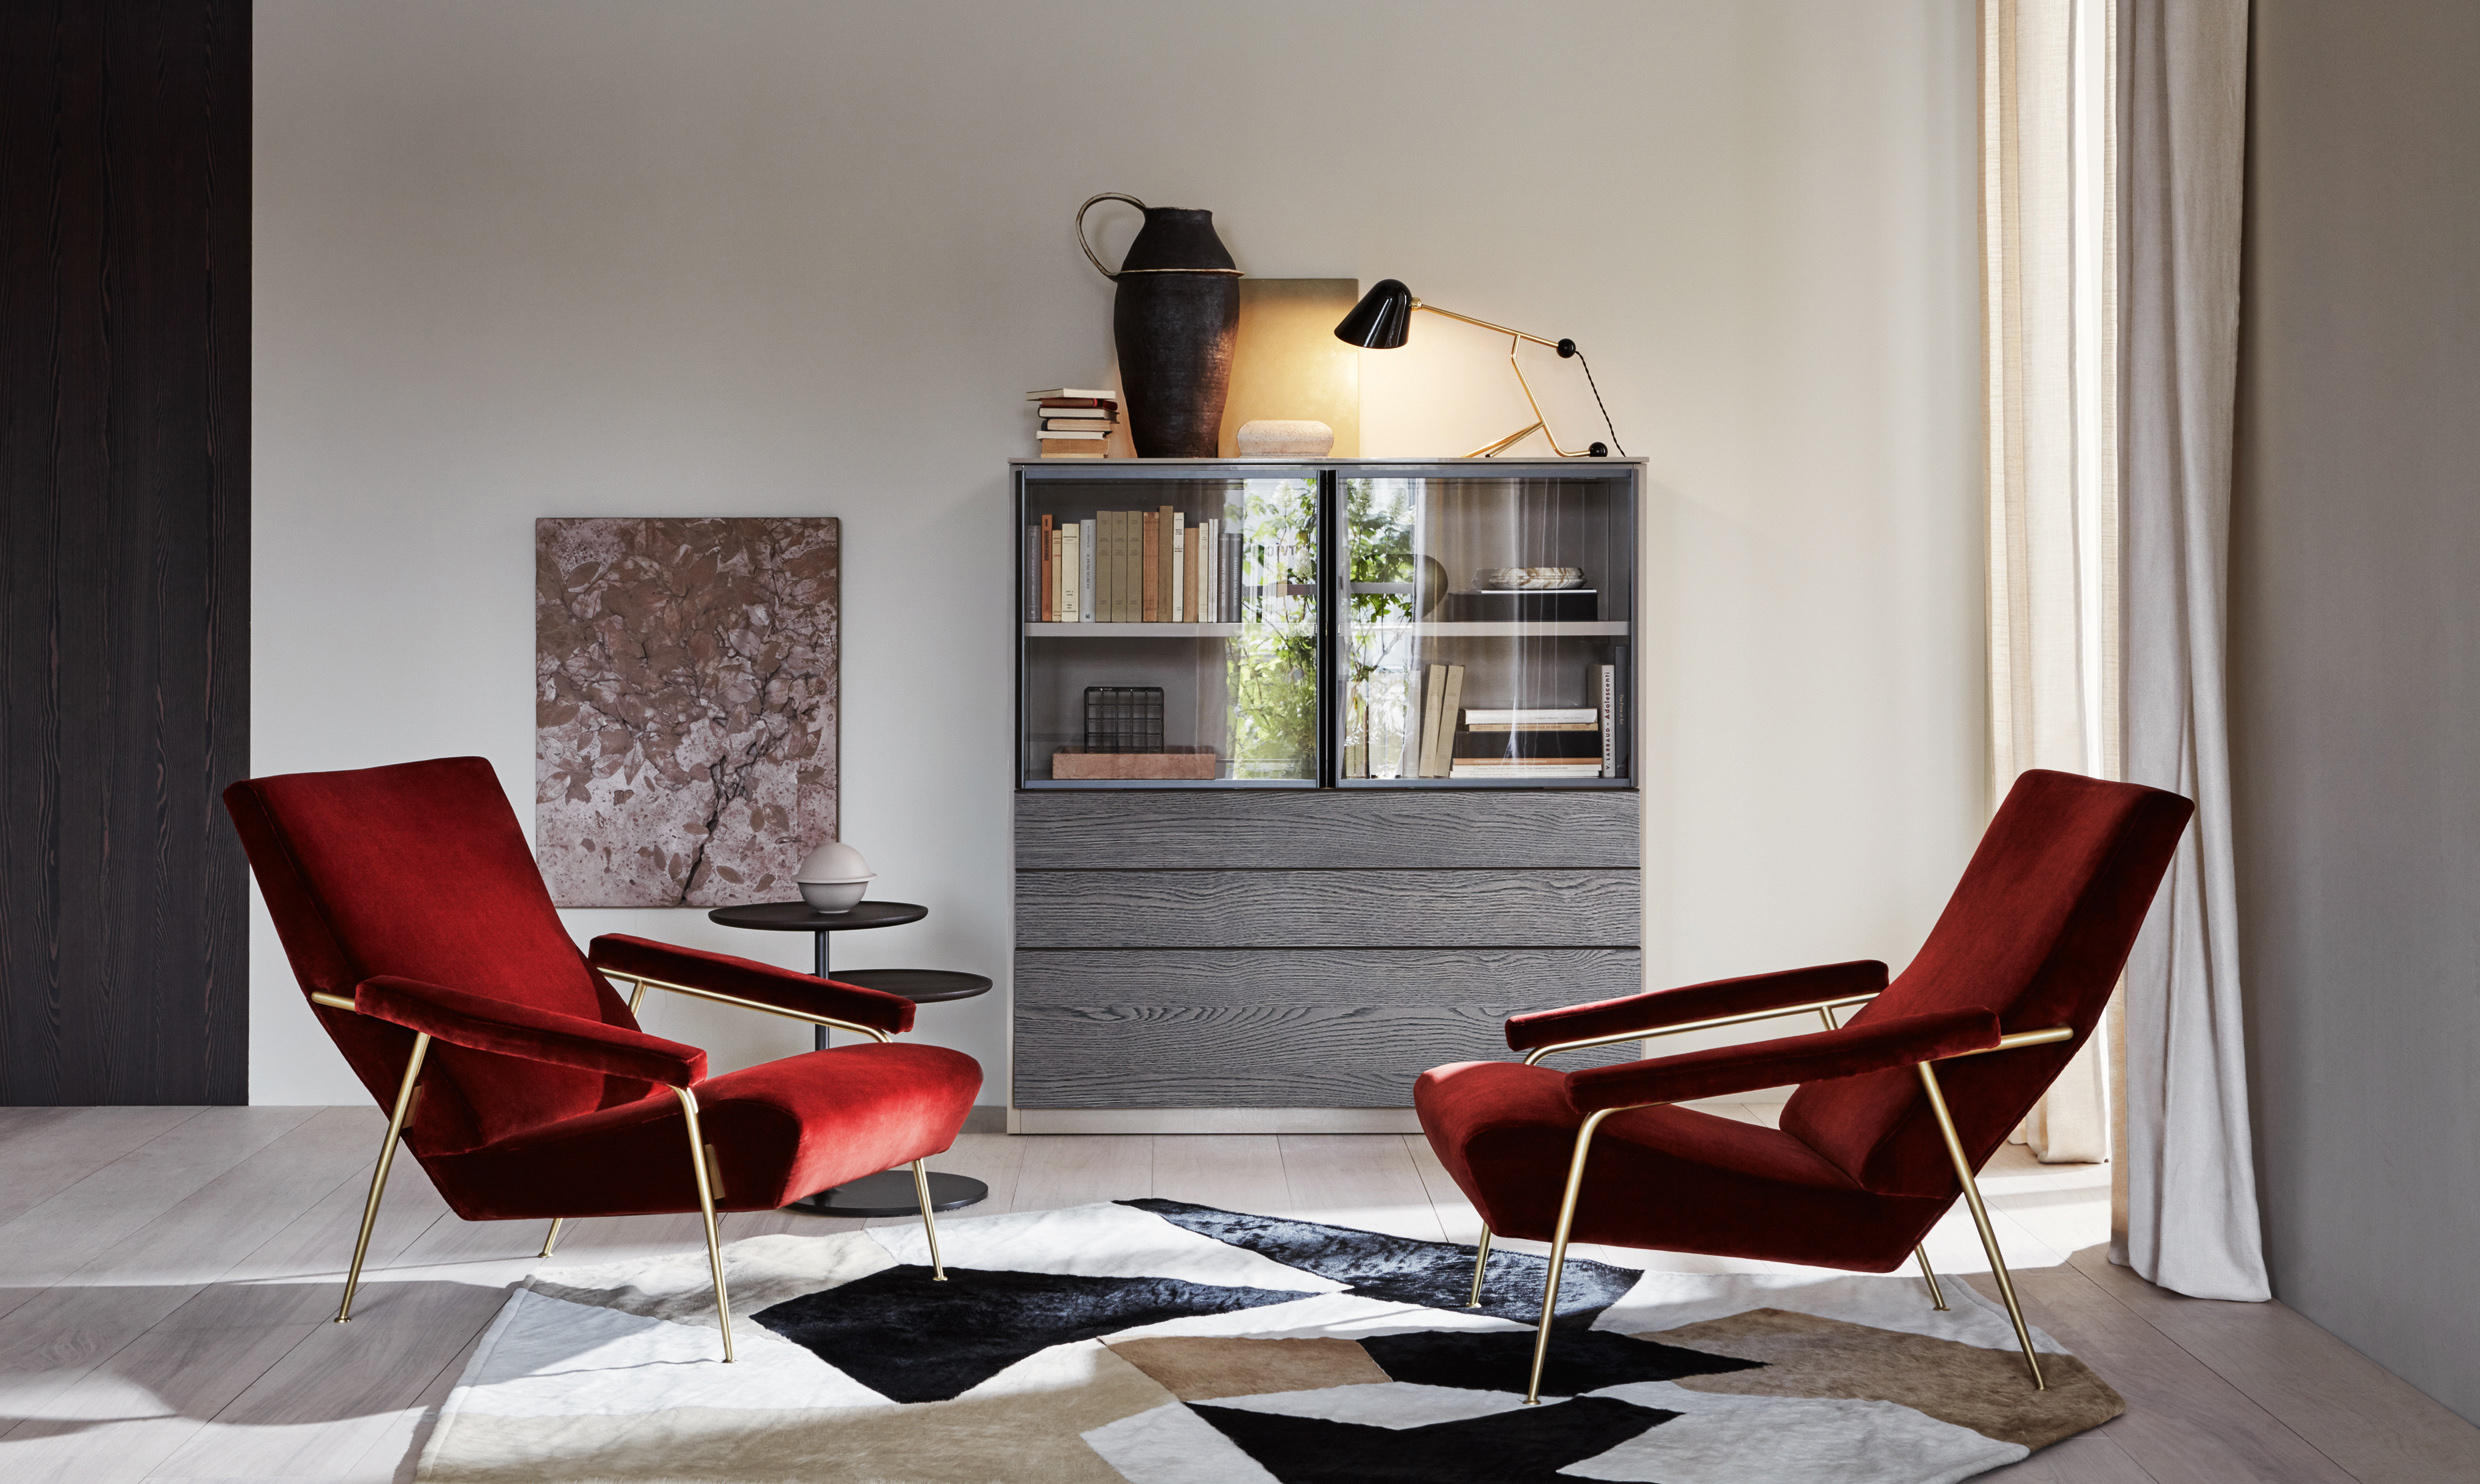 vitra office chair price wheels for legs d.153.1 armchair - armchairs from molteni & c | architonic